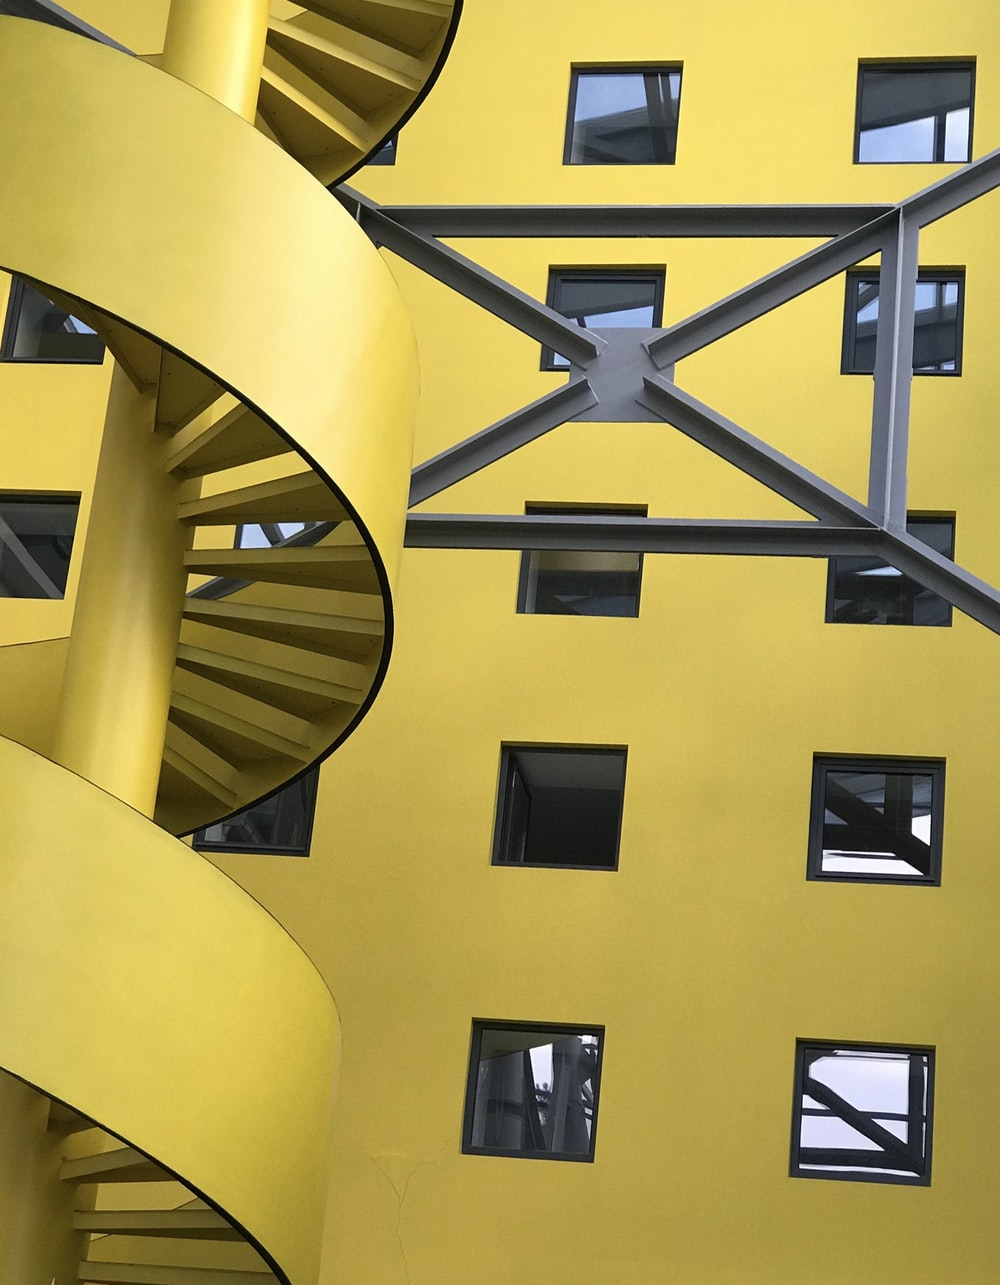 yellow and black spiral staircase